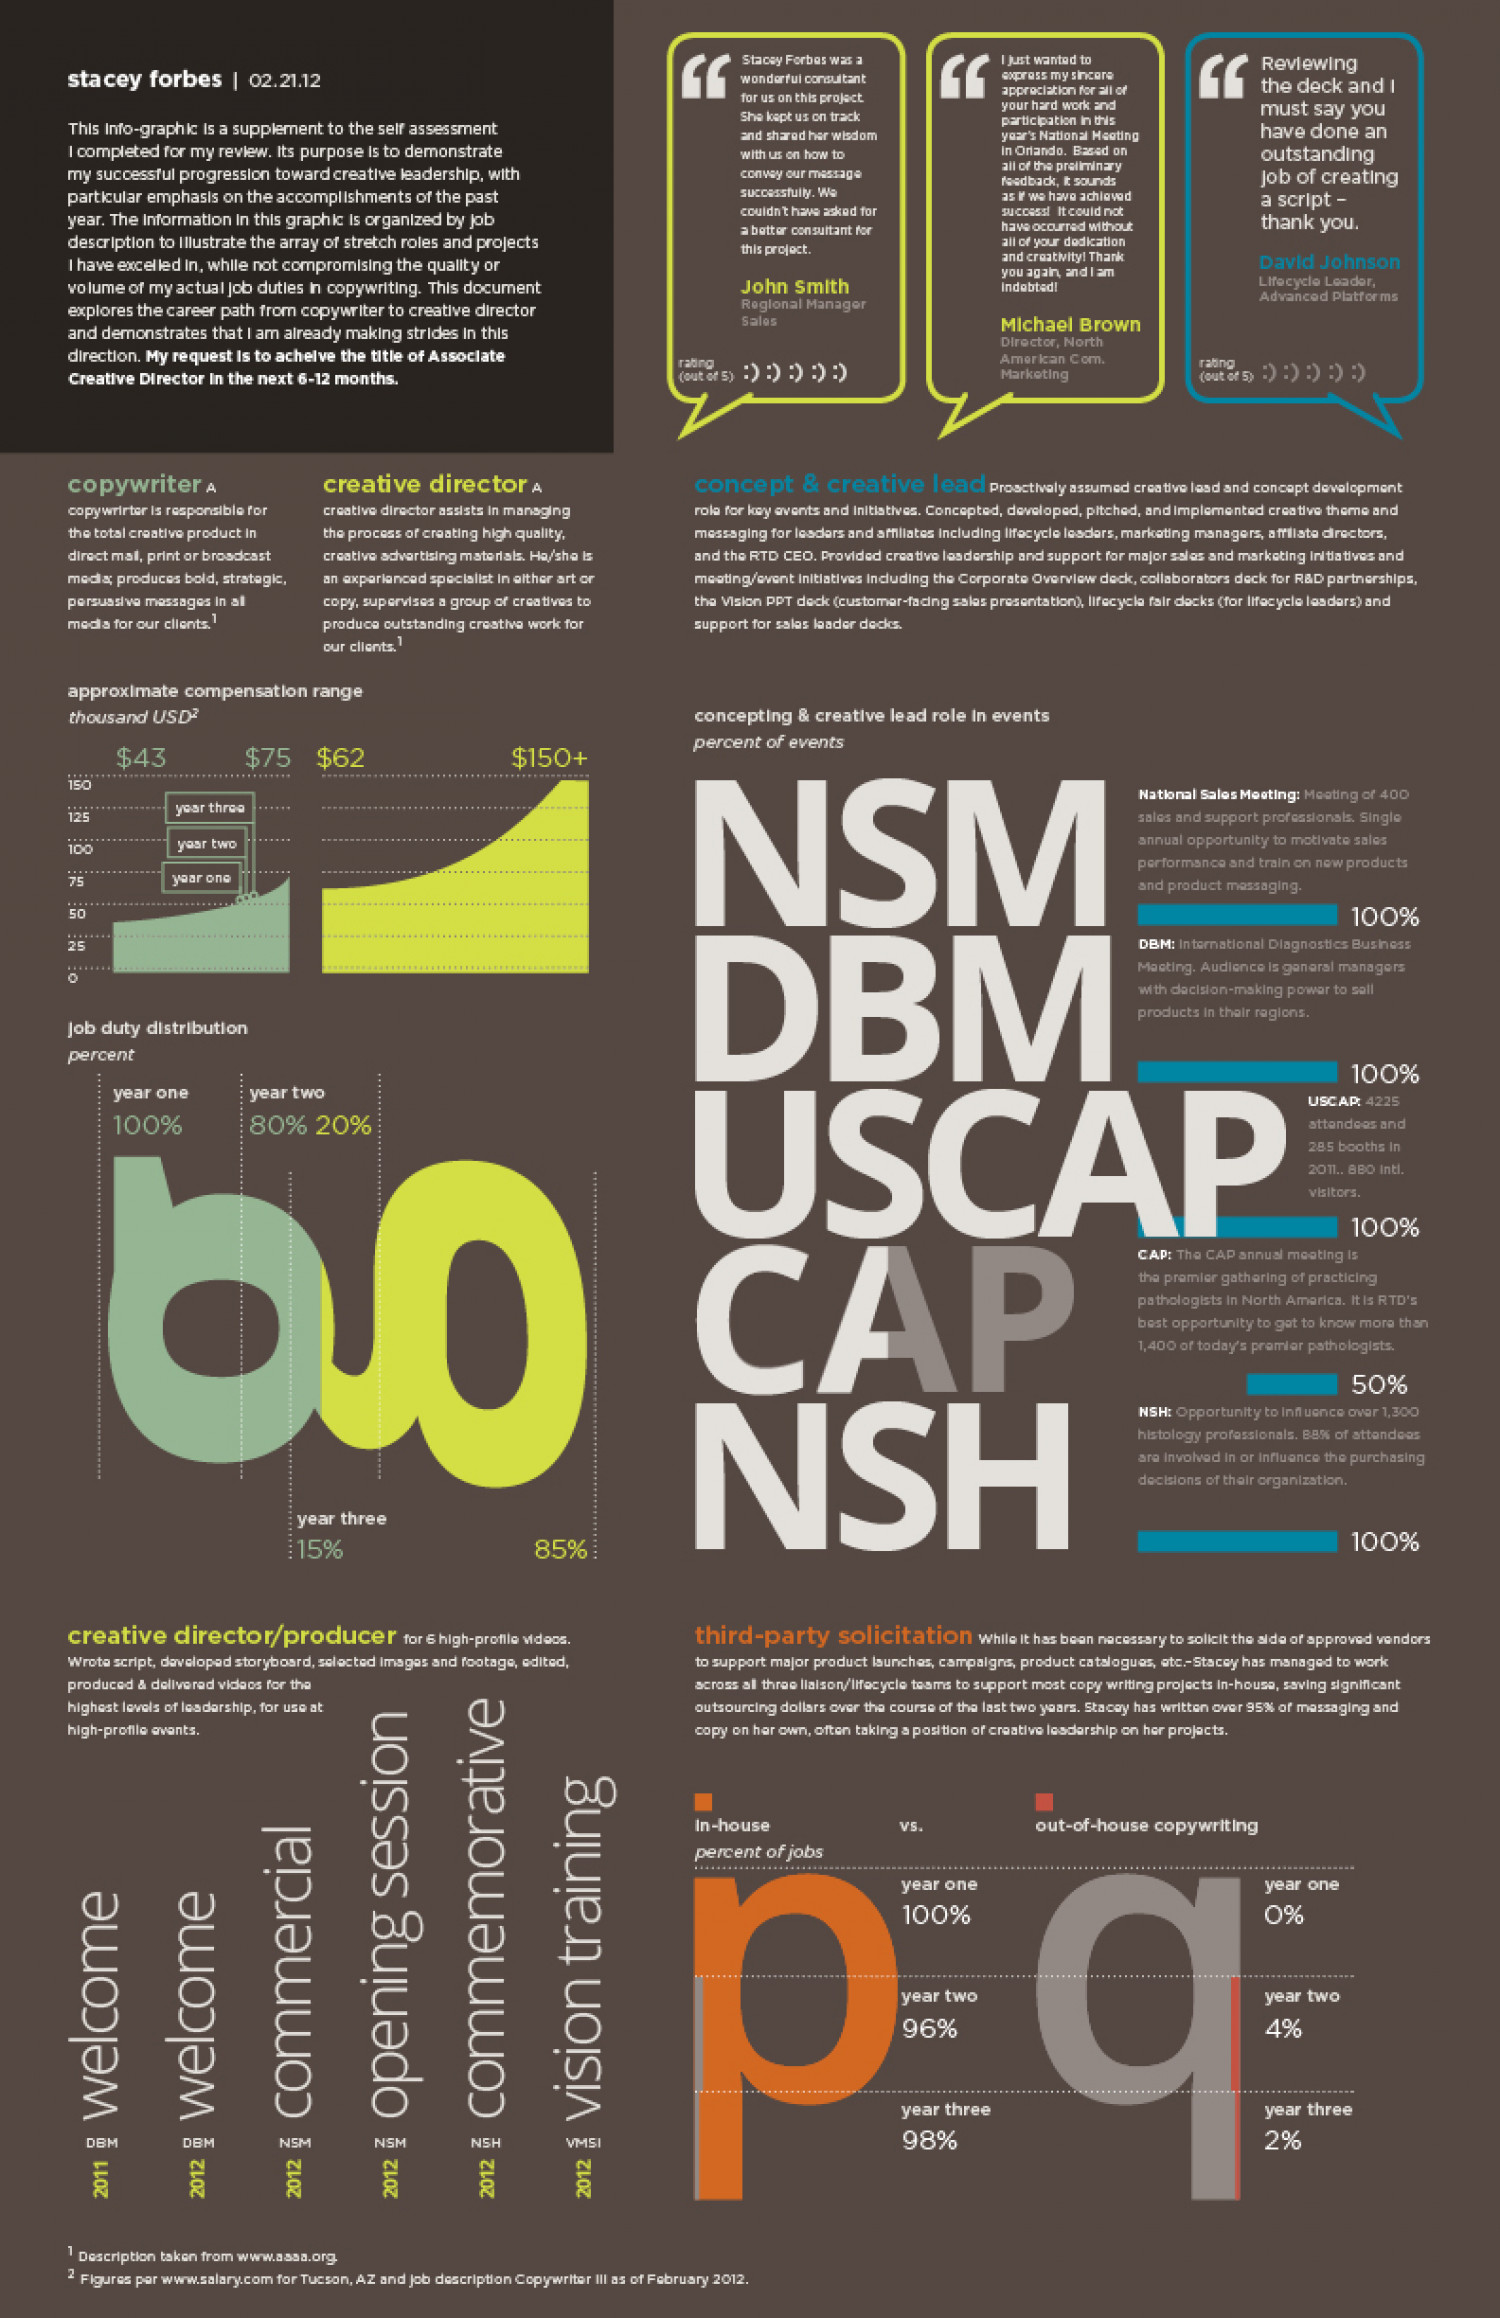 Copywriter Performance Review, 2011 Infographic